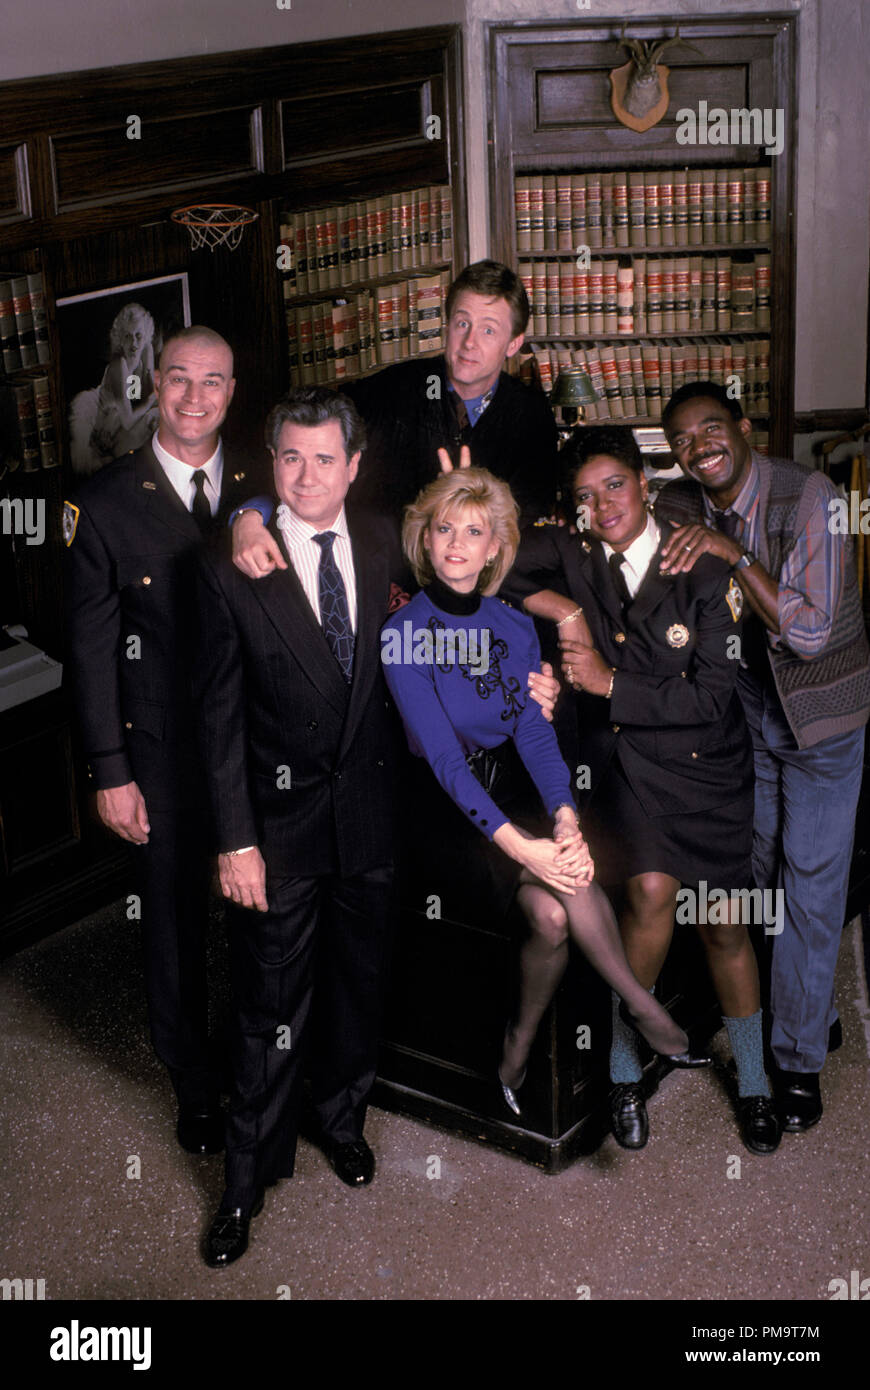 Studio Publicity Still from 'Night Court' Richard Moll, Harry Anderson, John Larroquette, Markie Post, Marsha Warfield, Charles Robinson  1988     All Rights Reserved   File Reference # 31694143THA  For Editorial Use Only - Stock Image